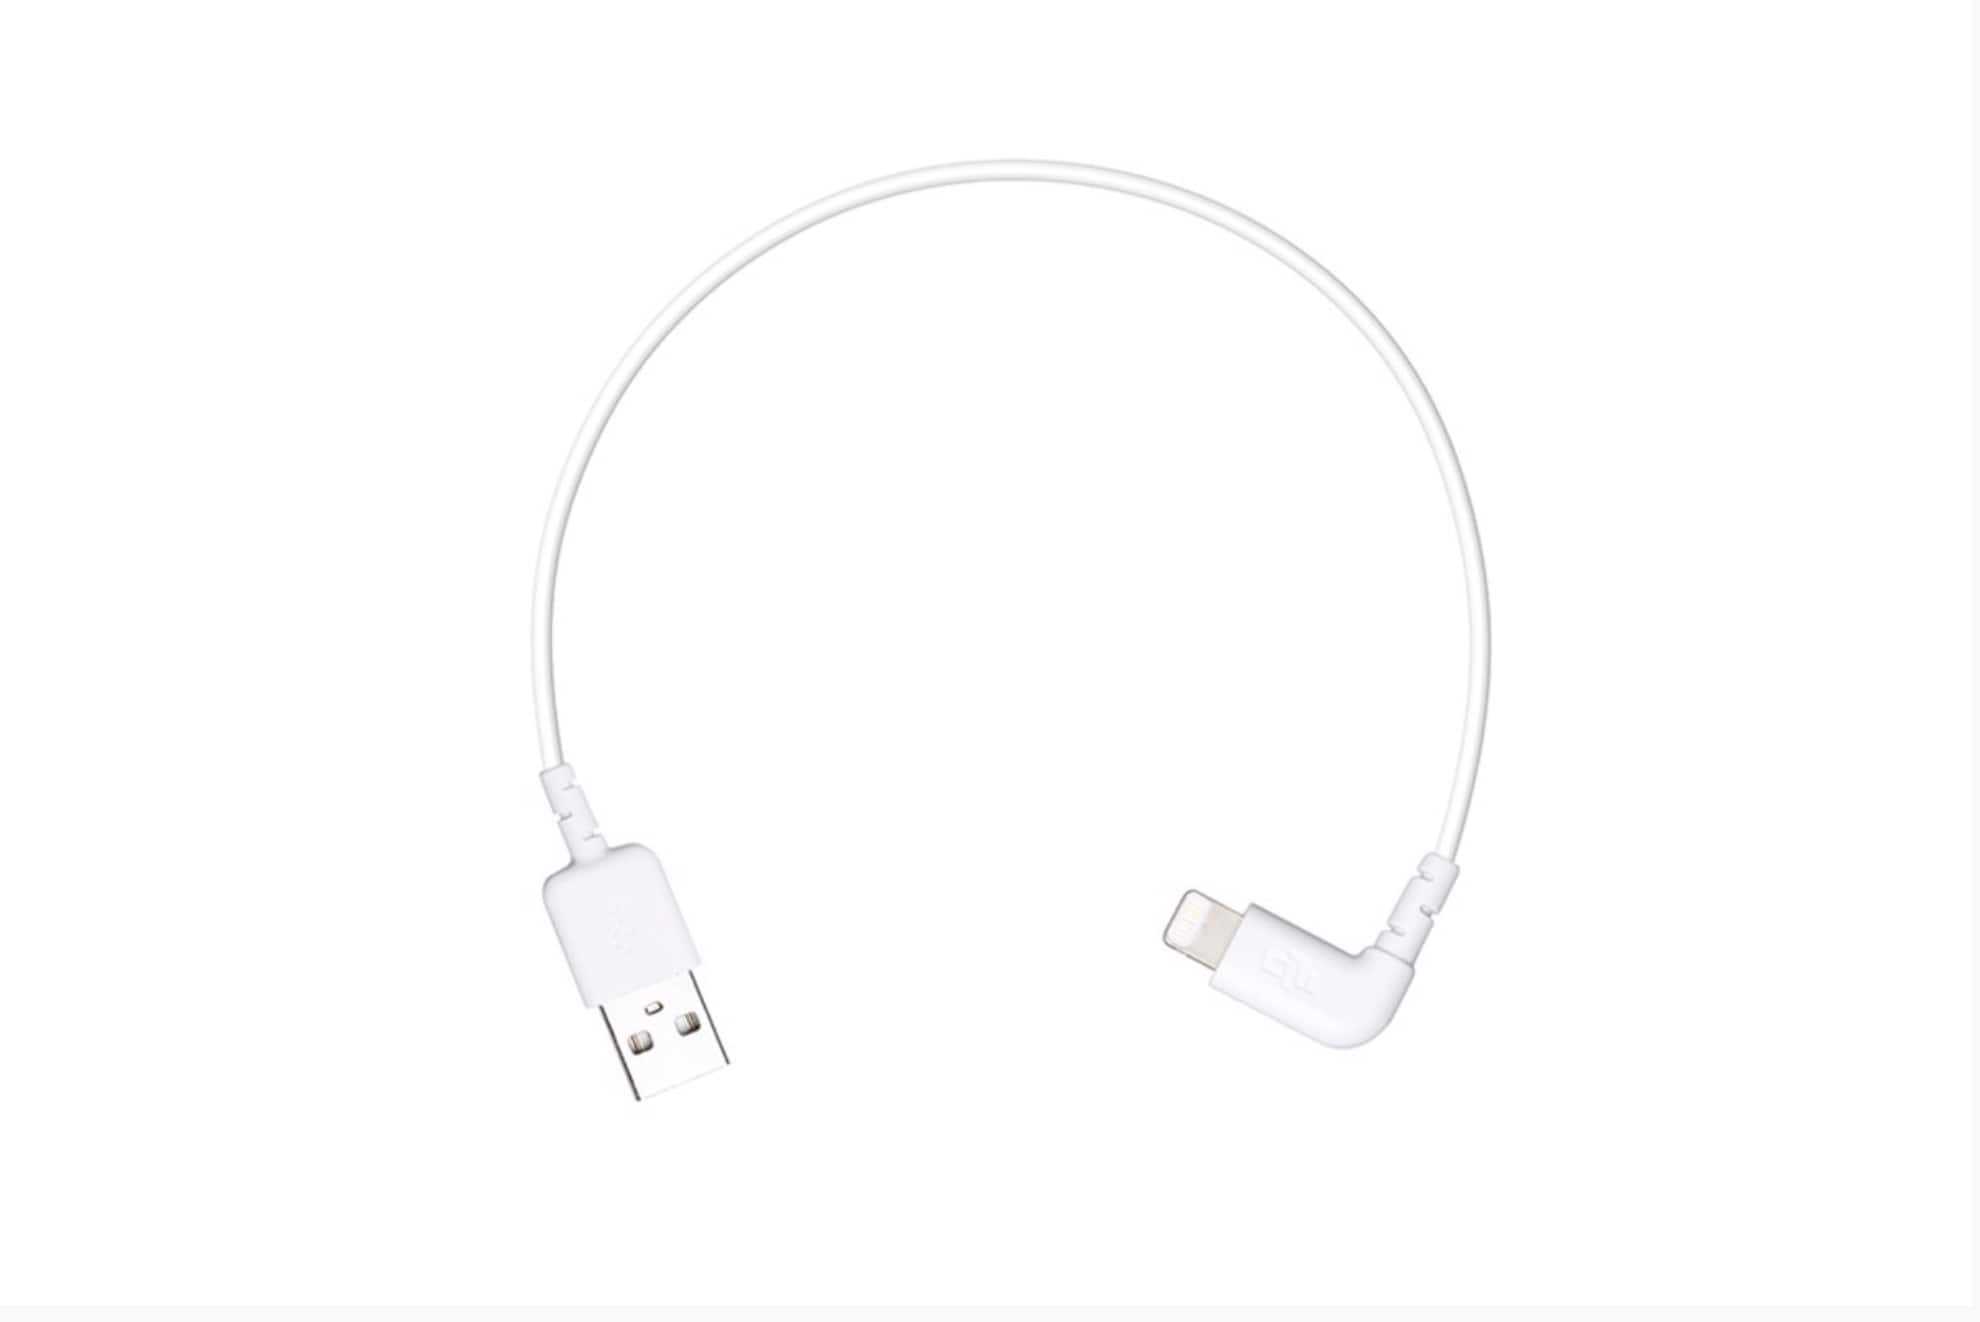 RC Cable (Lightning to USB)